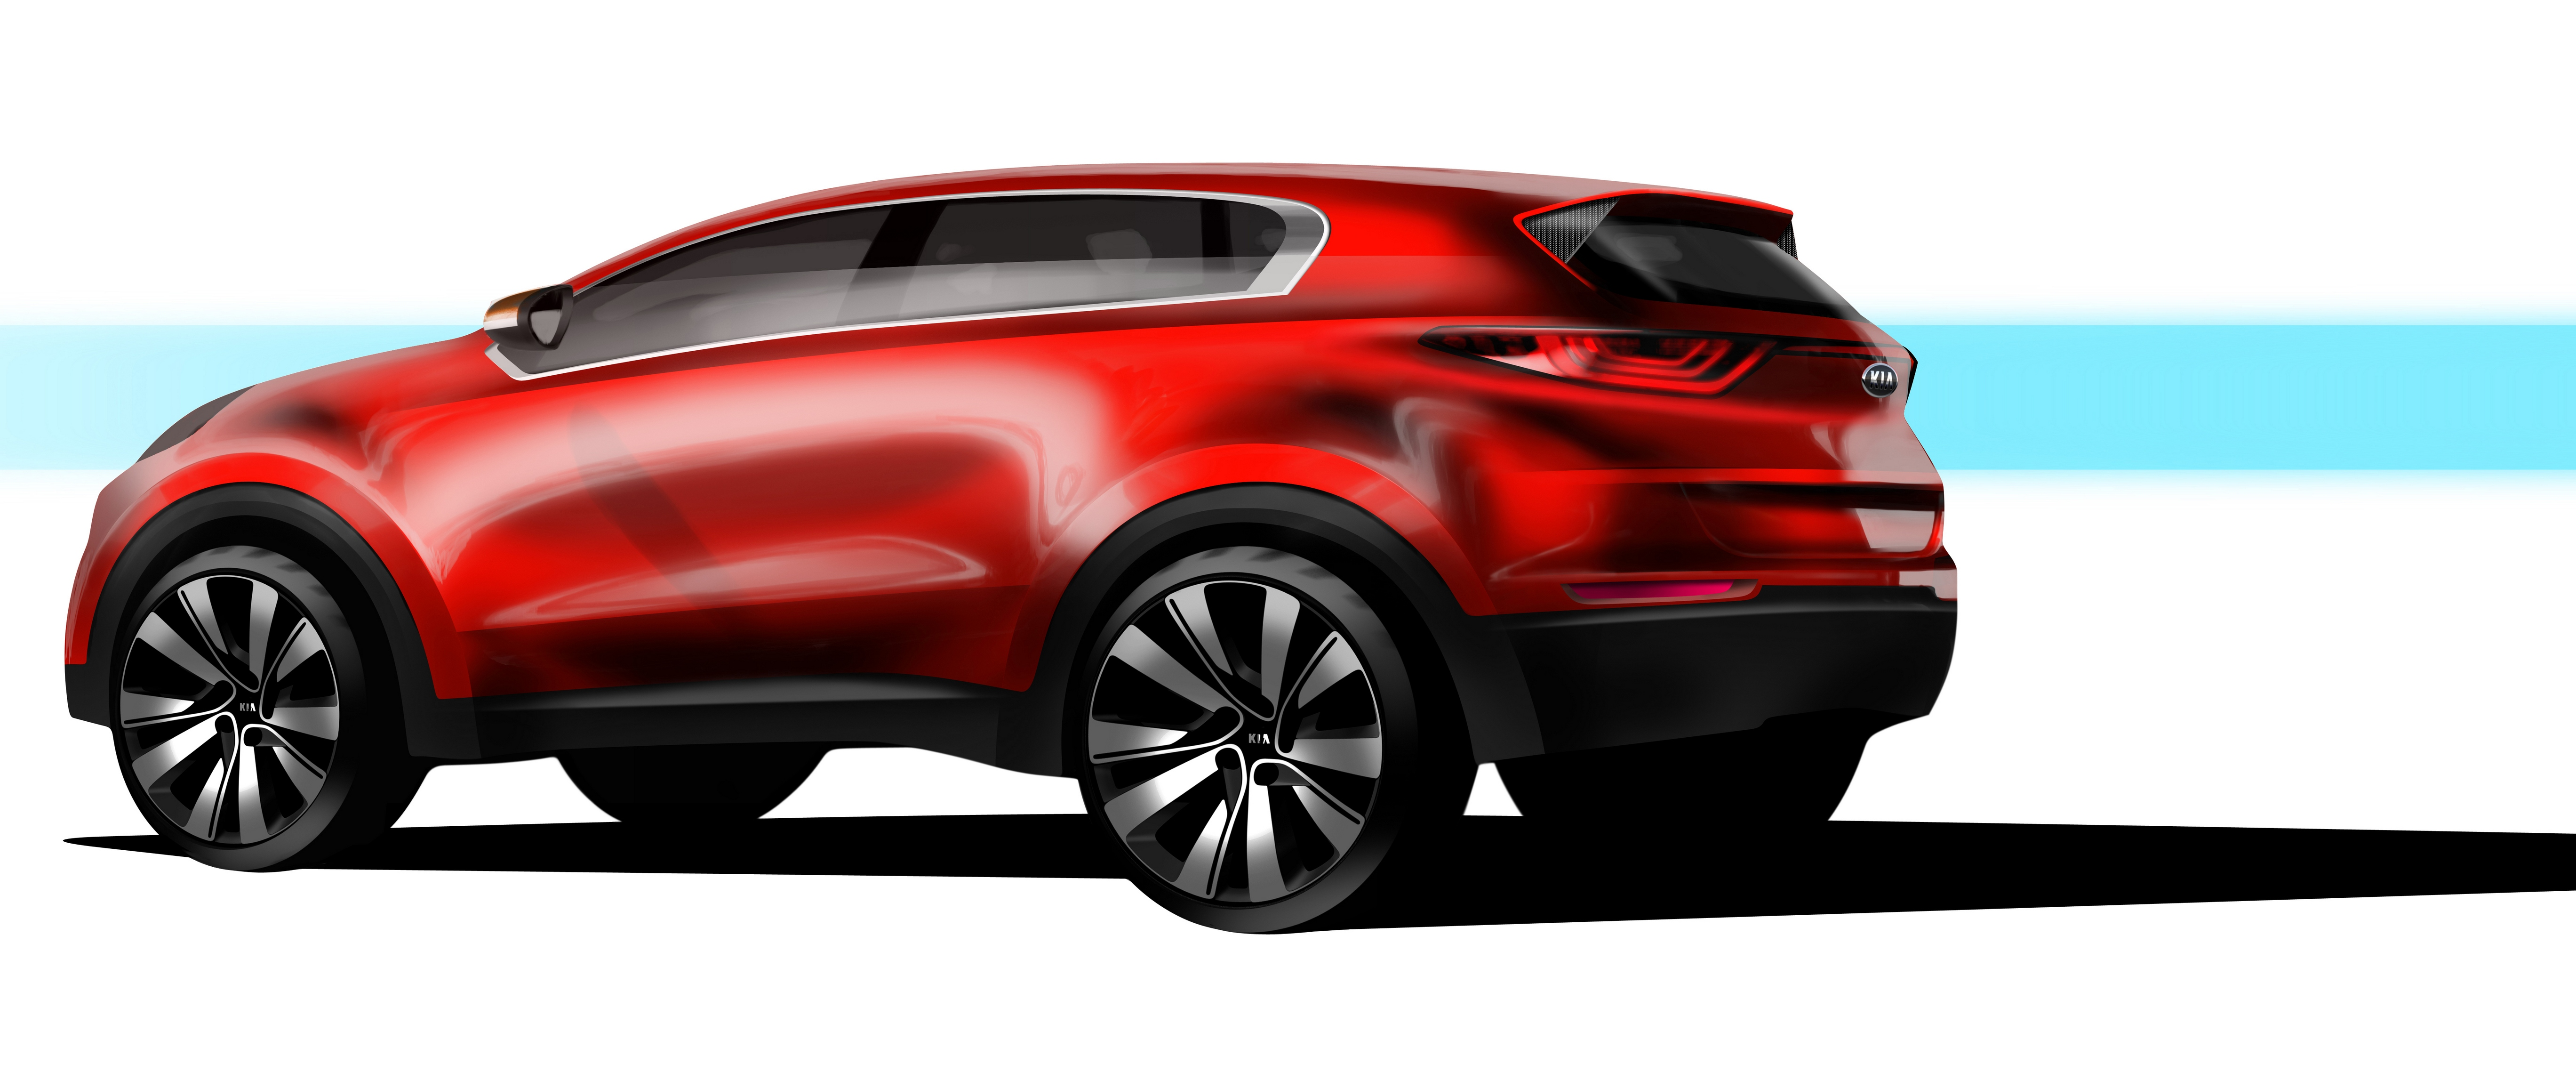 sportage with facelift kia looks new suv chinese for launch gets news sorento